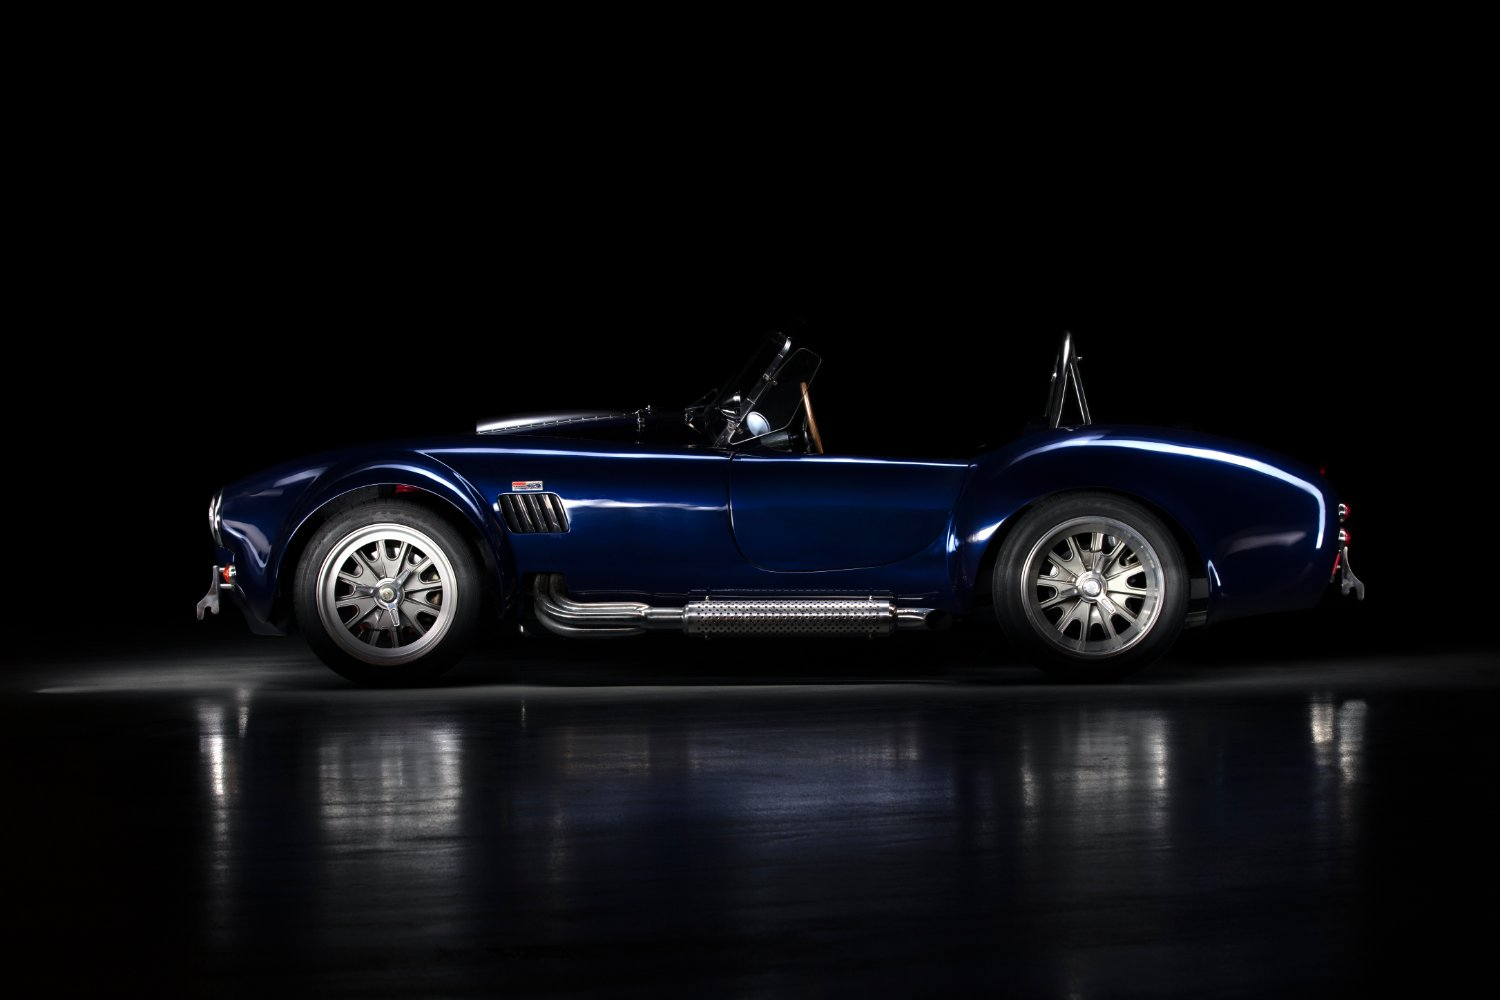 Ashley |1965 Shelby Cobra by Backdraft Racing |Auto Reflection by Baptiste Griselle